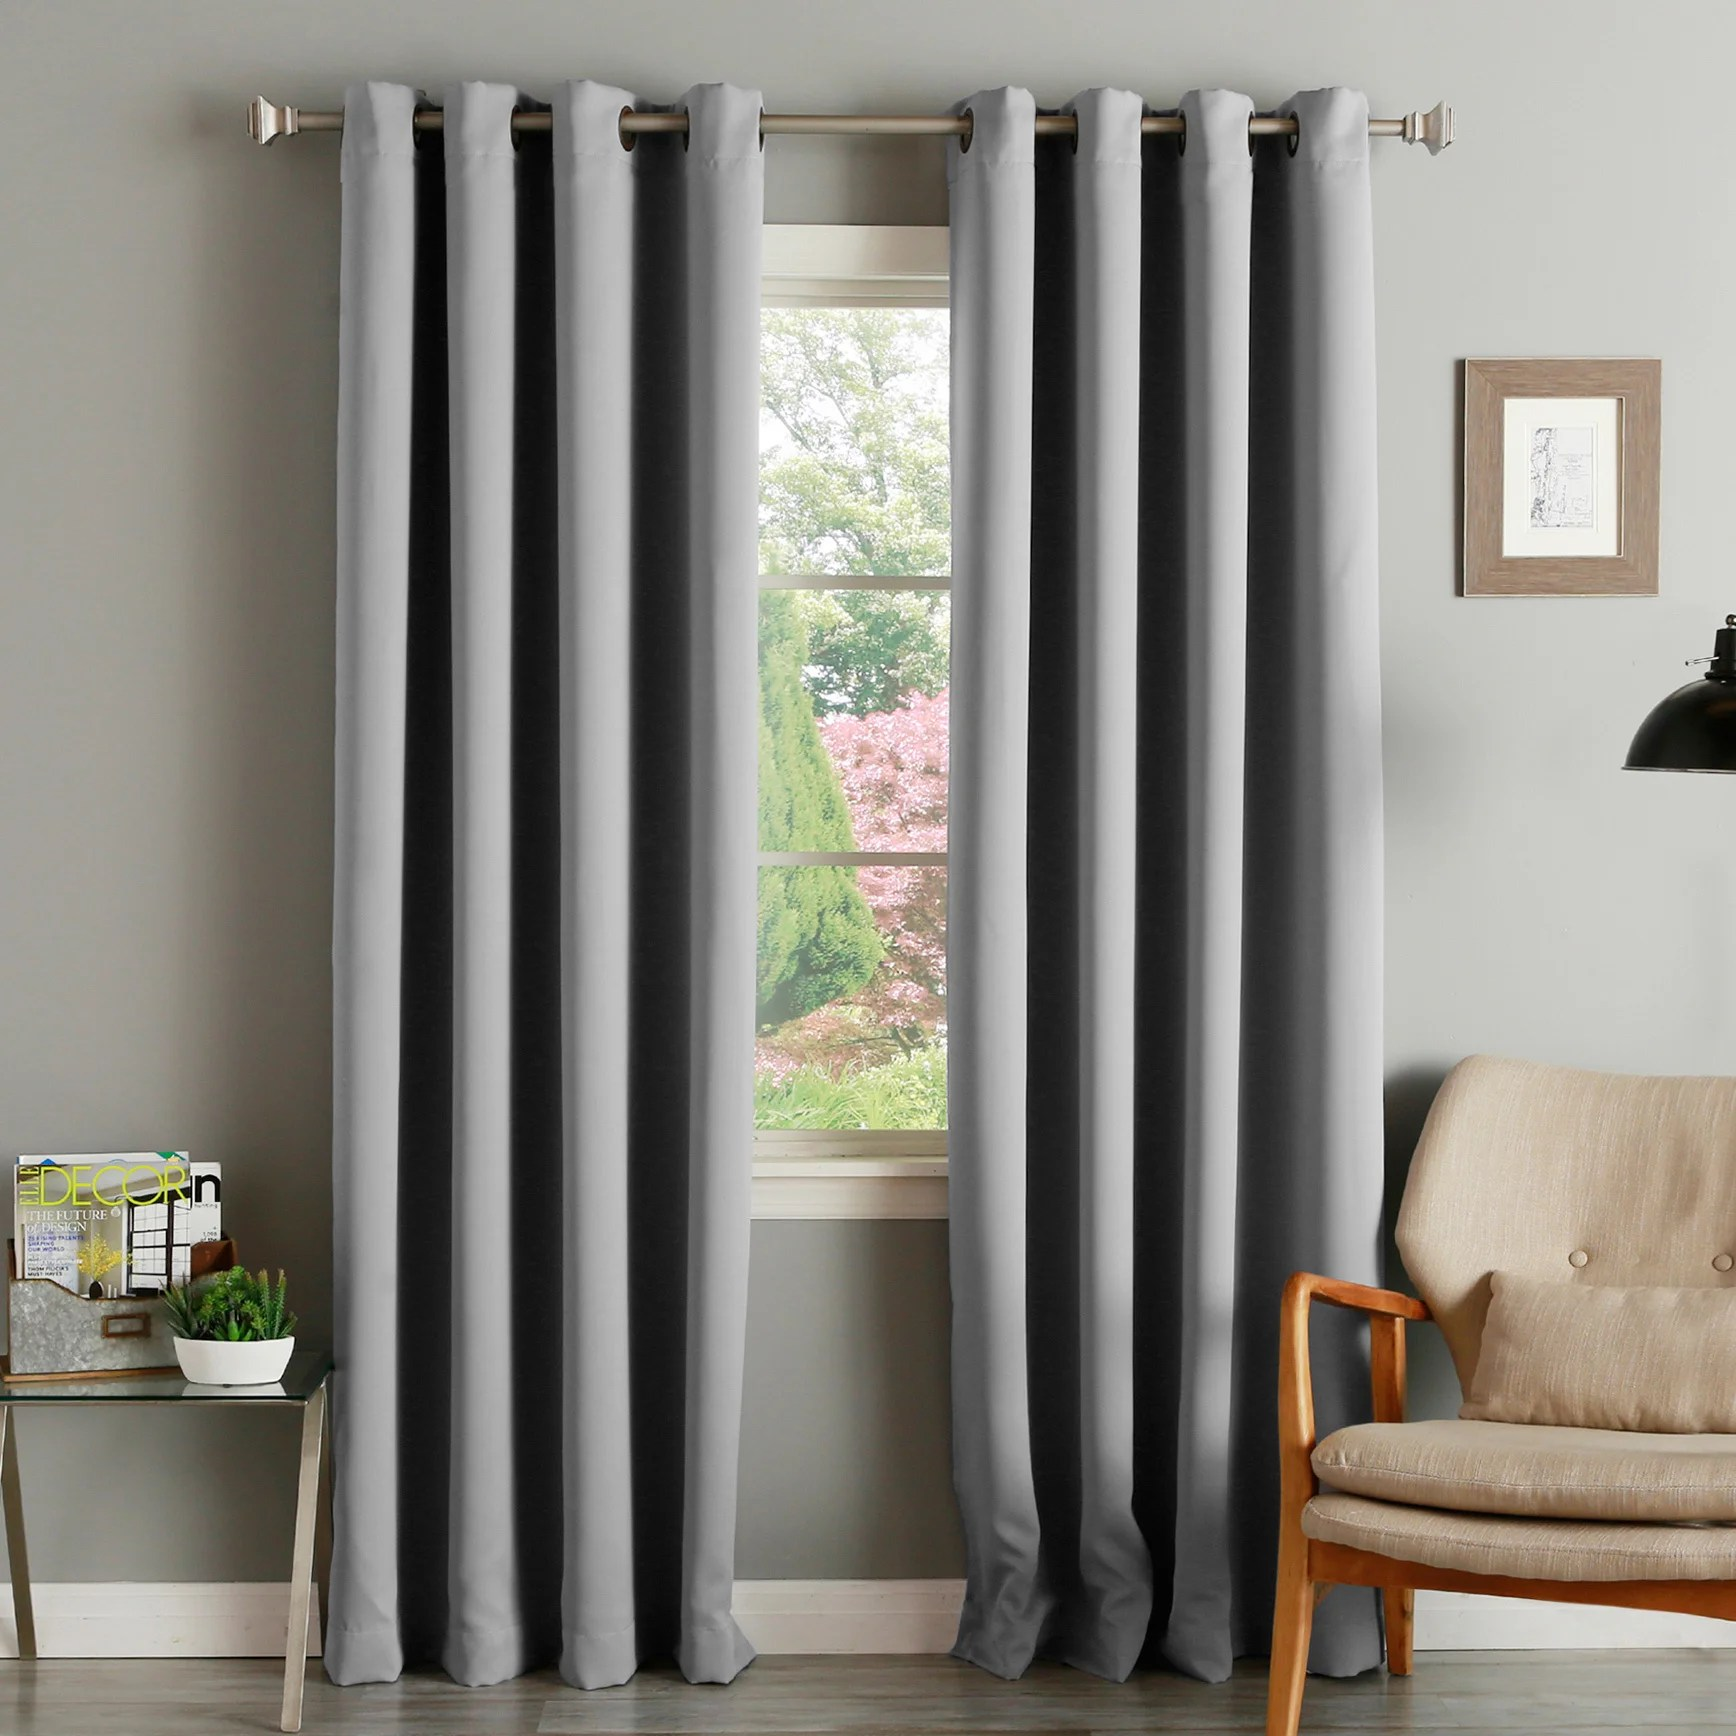 94 Inch Blackout Curtains Aurora Home Thermal Insulated Blackout Grommet Top Curtain Panel Pair